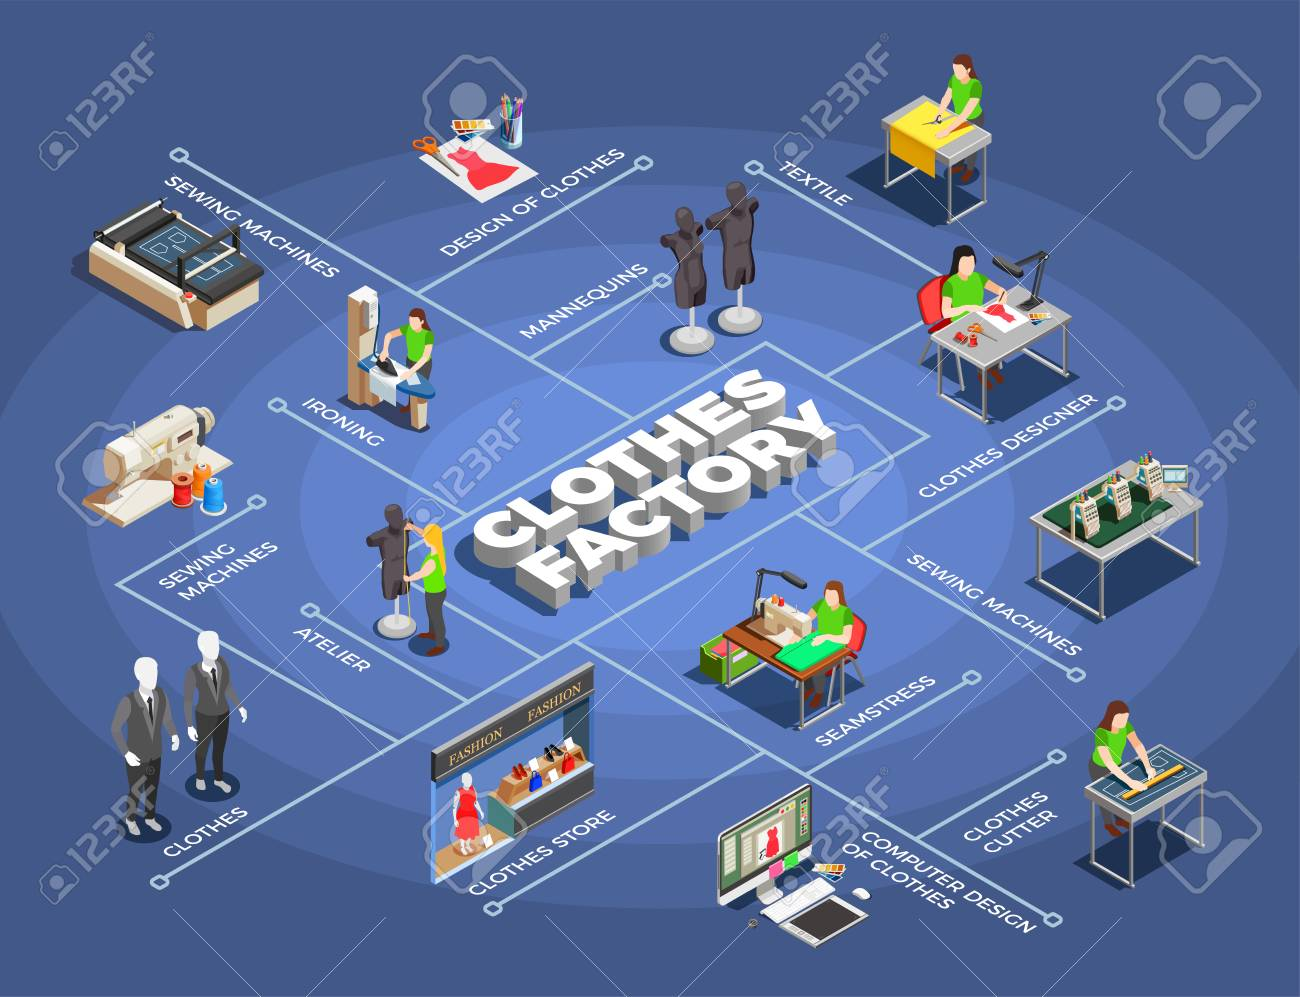 Fashion clothes factory manufacturing process isometric flowchart with modeling patters designing cutting sewing ironing selling vector illustration - 92101750